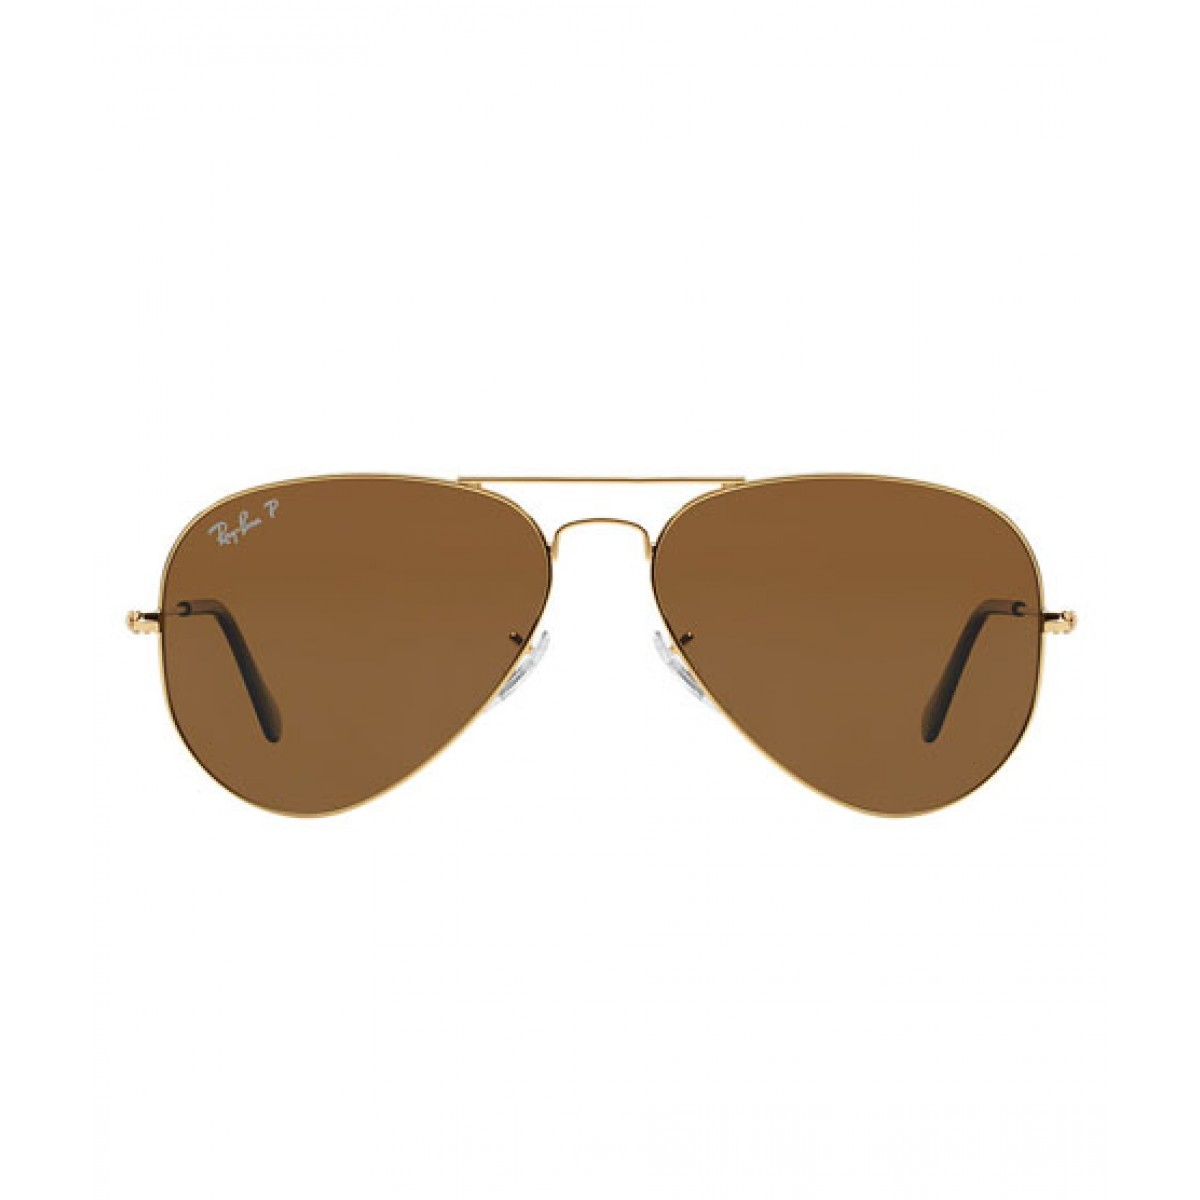 RayBan Original Aviator Polarized Sunglasses RB3025 62